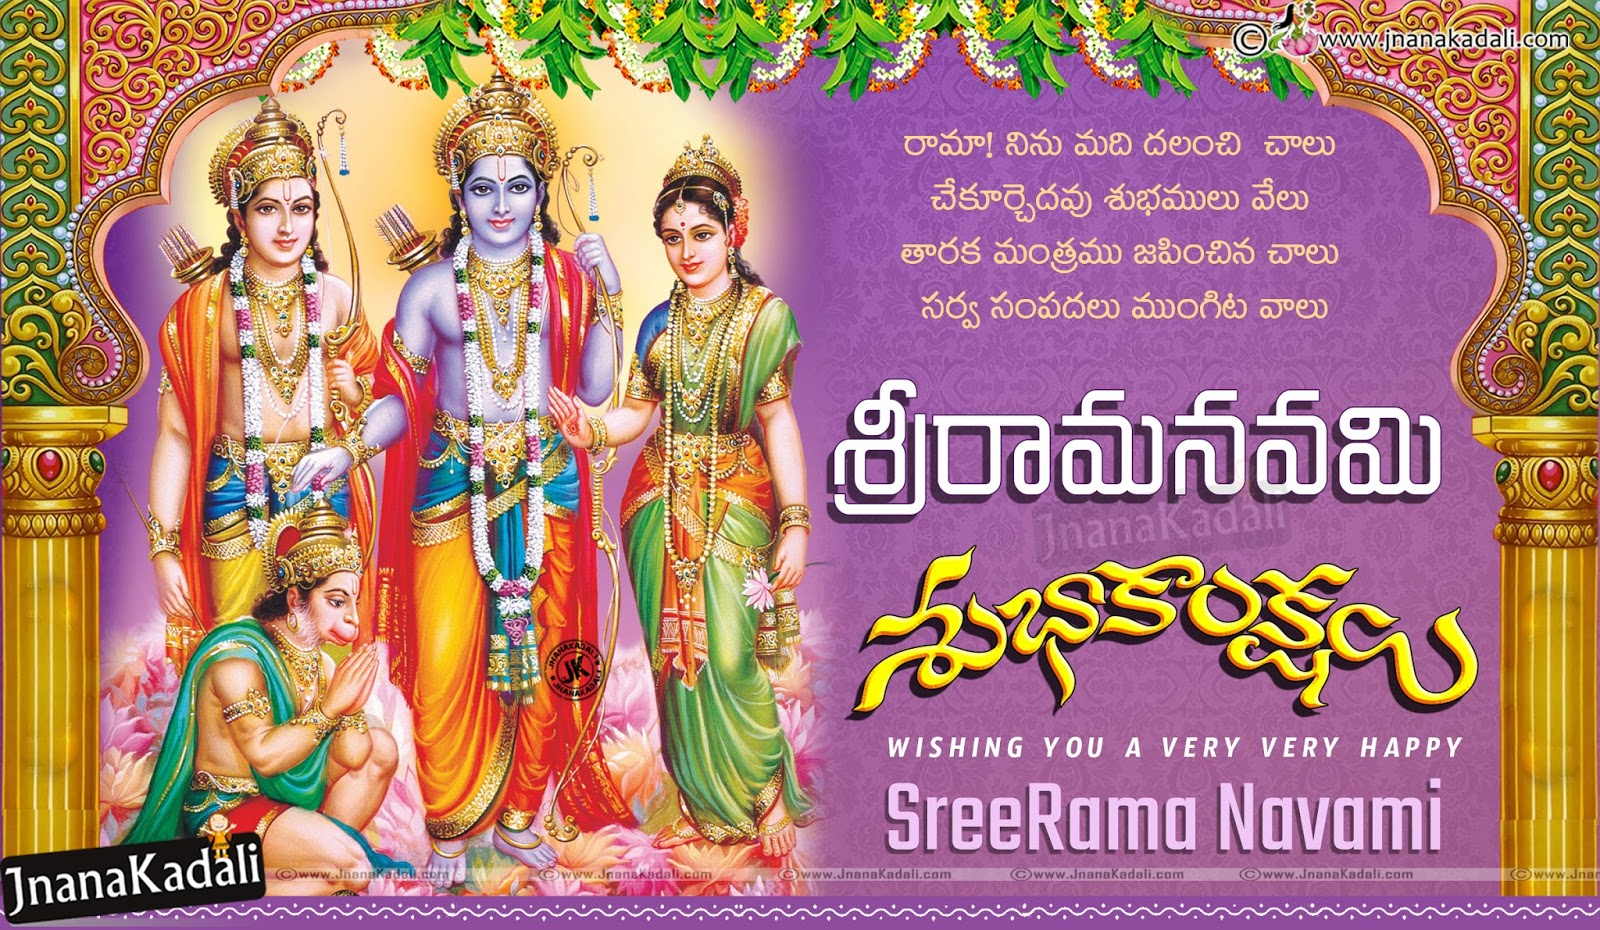 Whats app sharing srirama navami festival greetings with hd lord sitaram hd wallpapers with navami greetings free download sitrram hd wallpapers free download whats app sharing sree ramanavami m4hsunfo